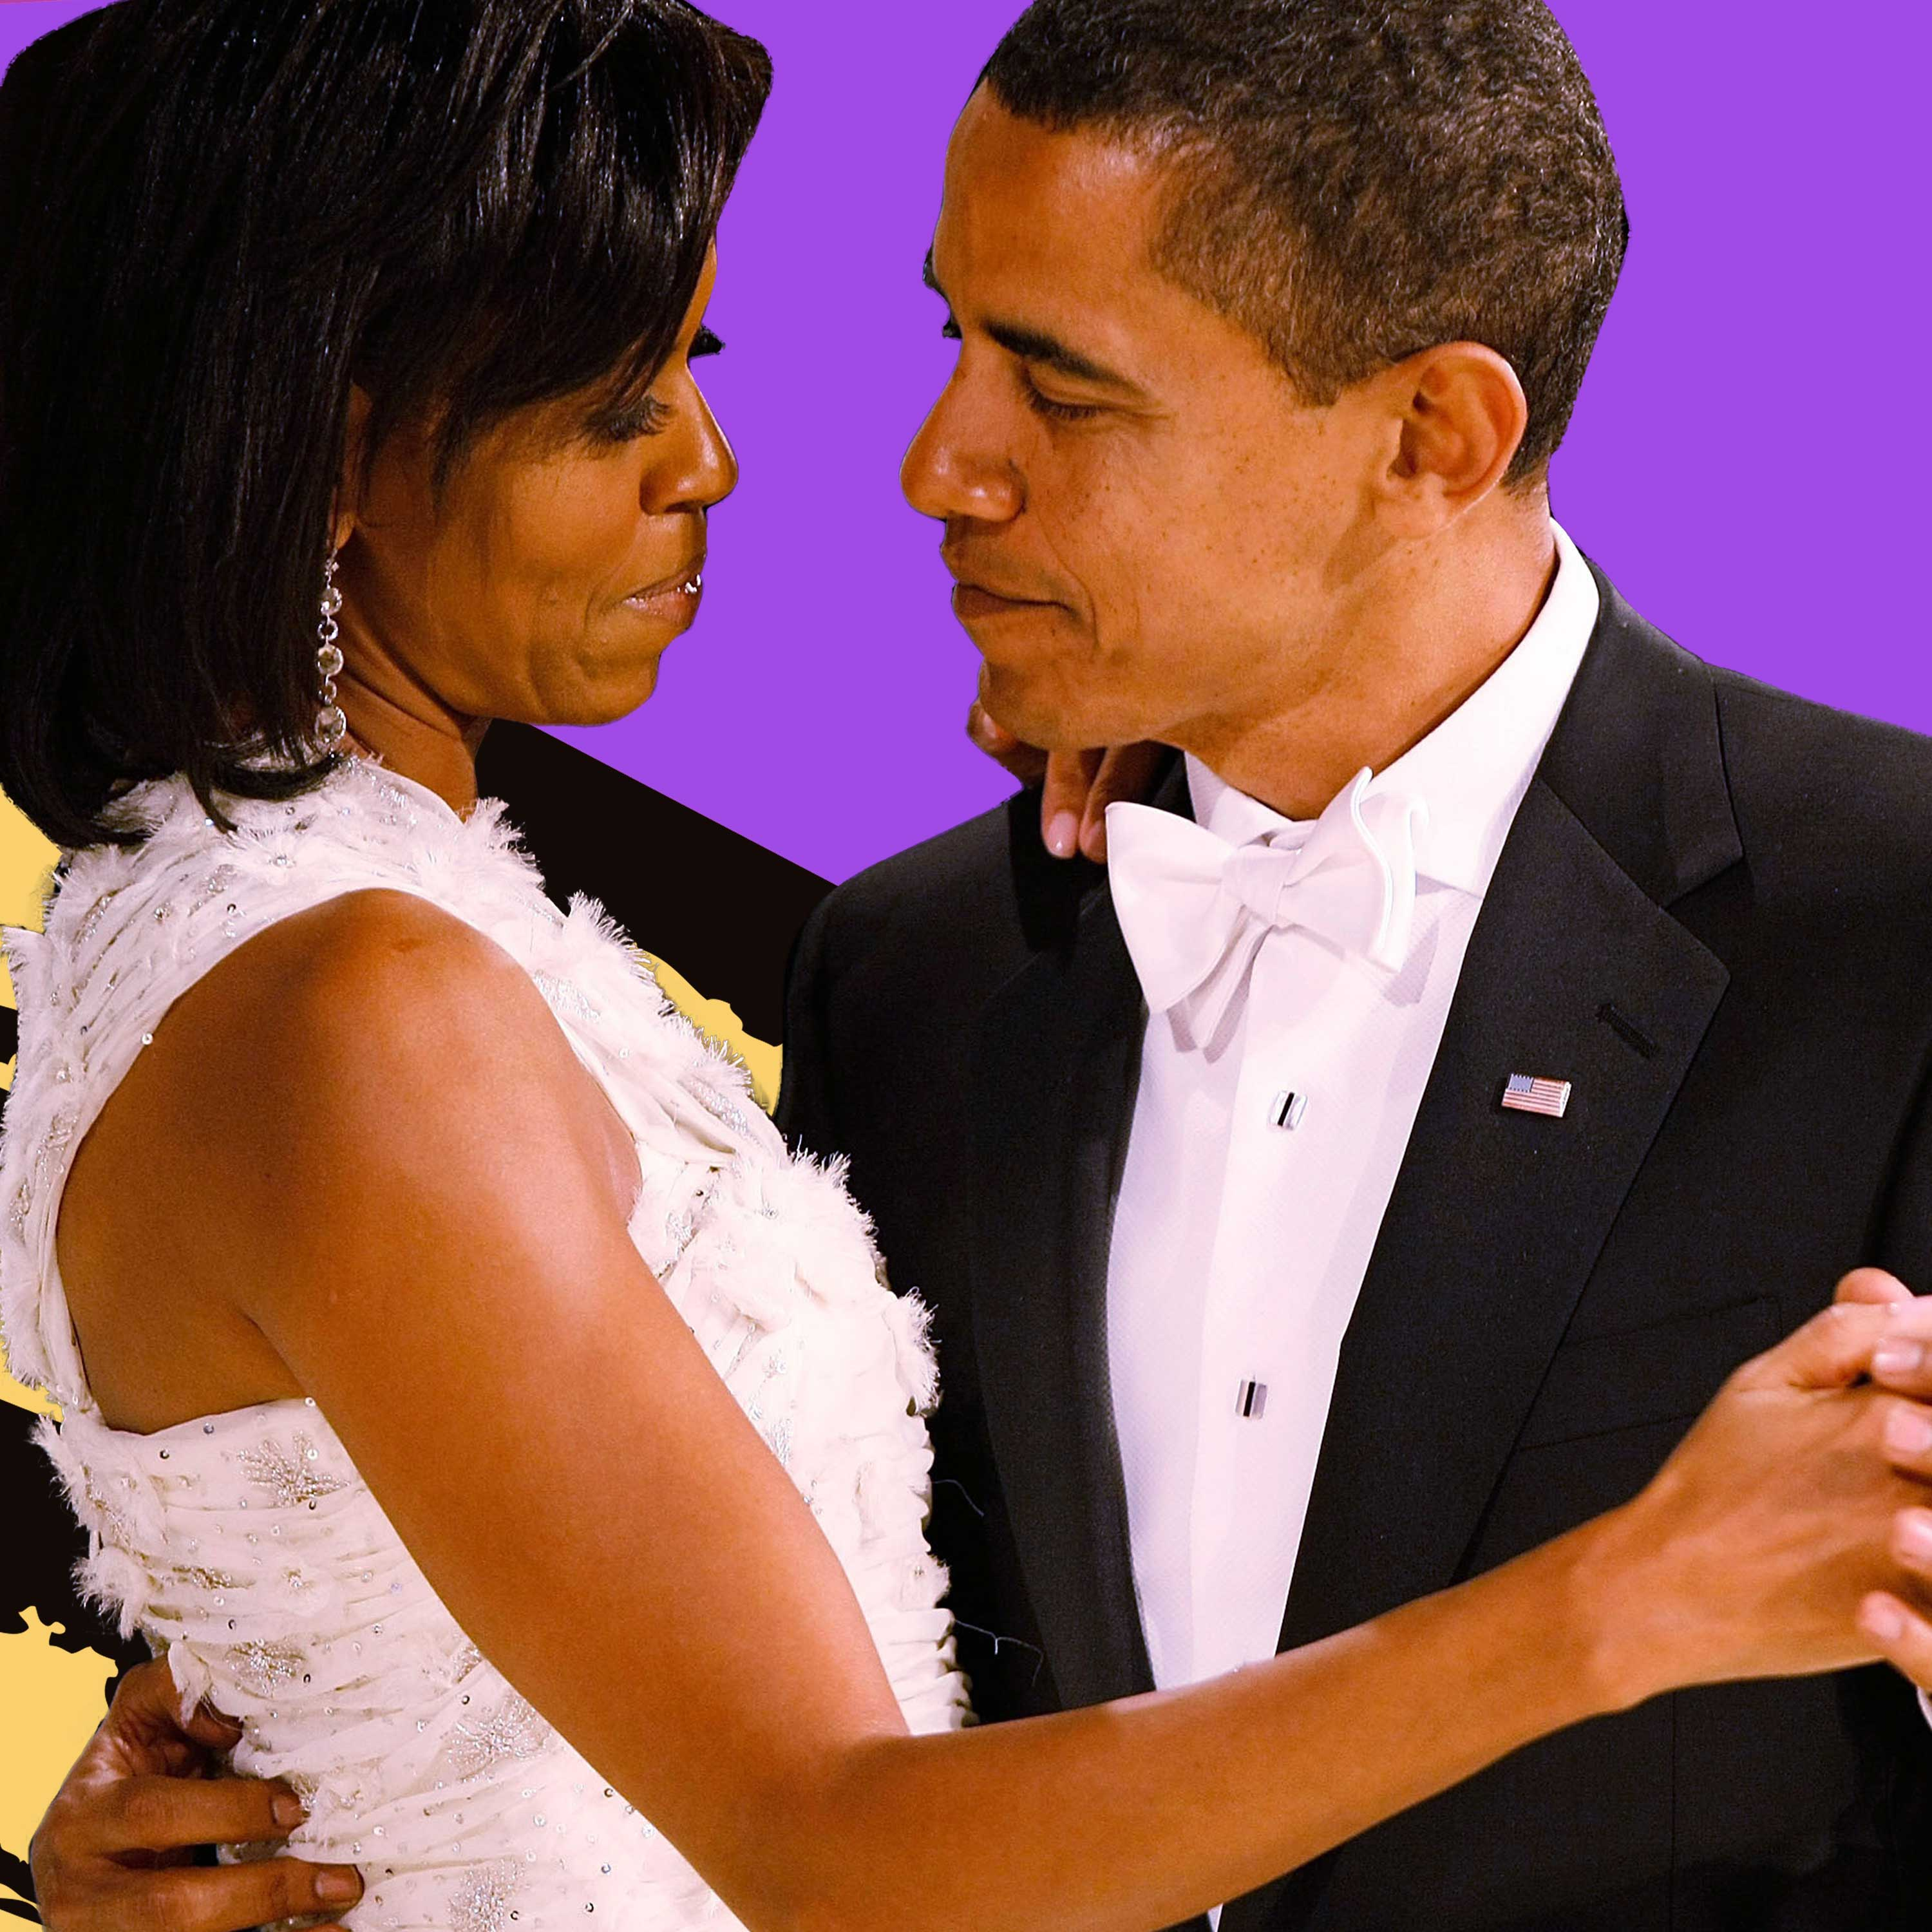 See Barack Obama Crash His Wife's Conference with Gushy Anniversary Tribute That Made Her Gasp, 'I Better Get Home!'